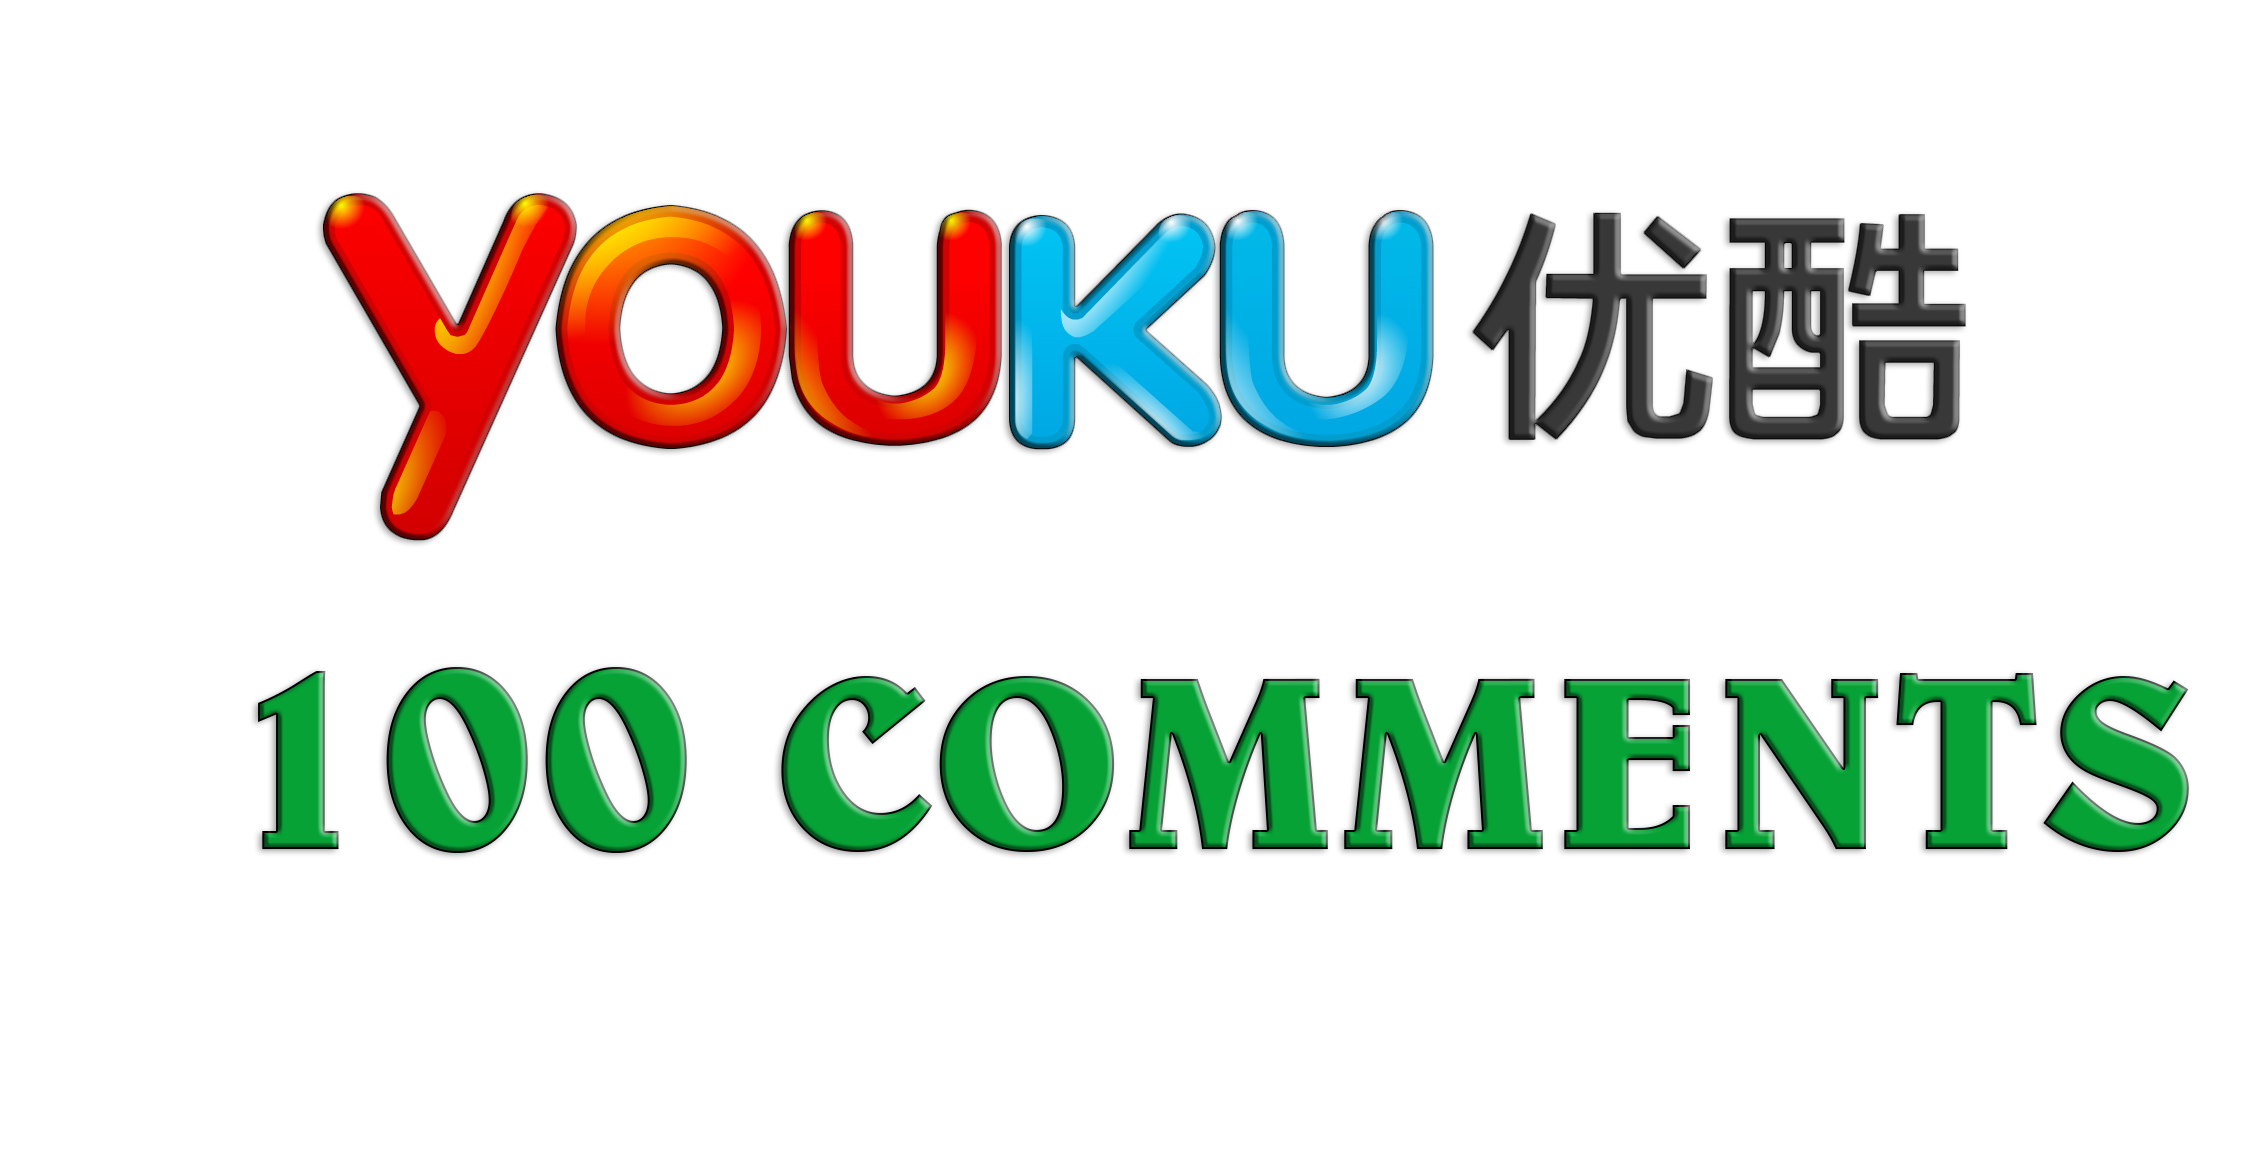 Add 100 Youku comments